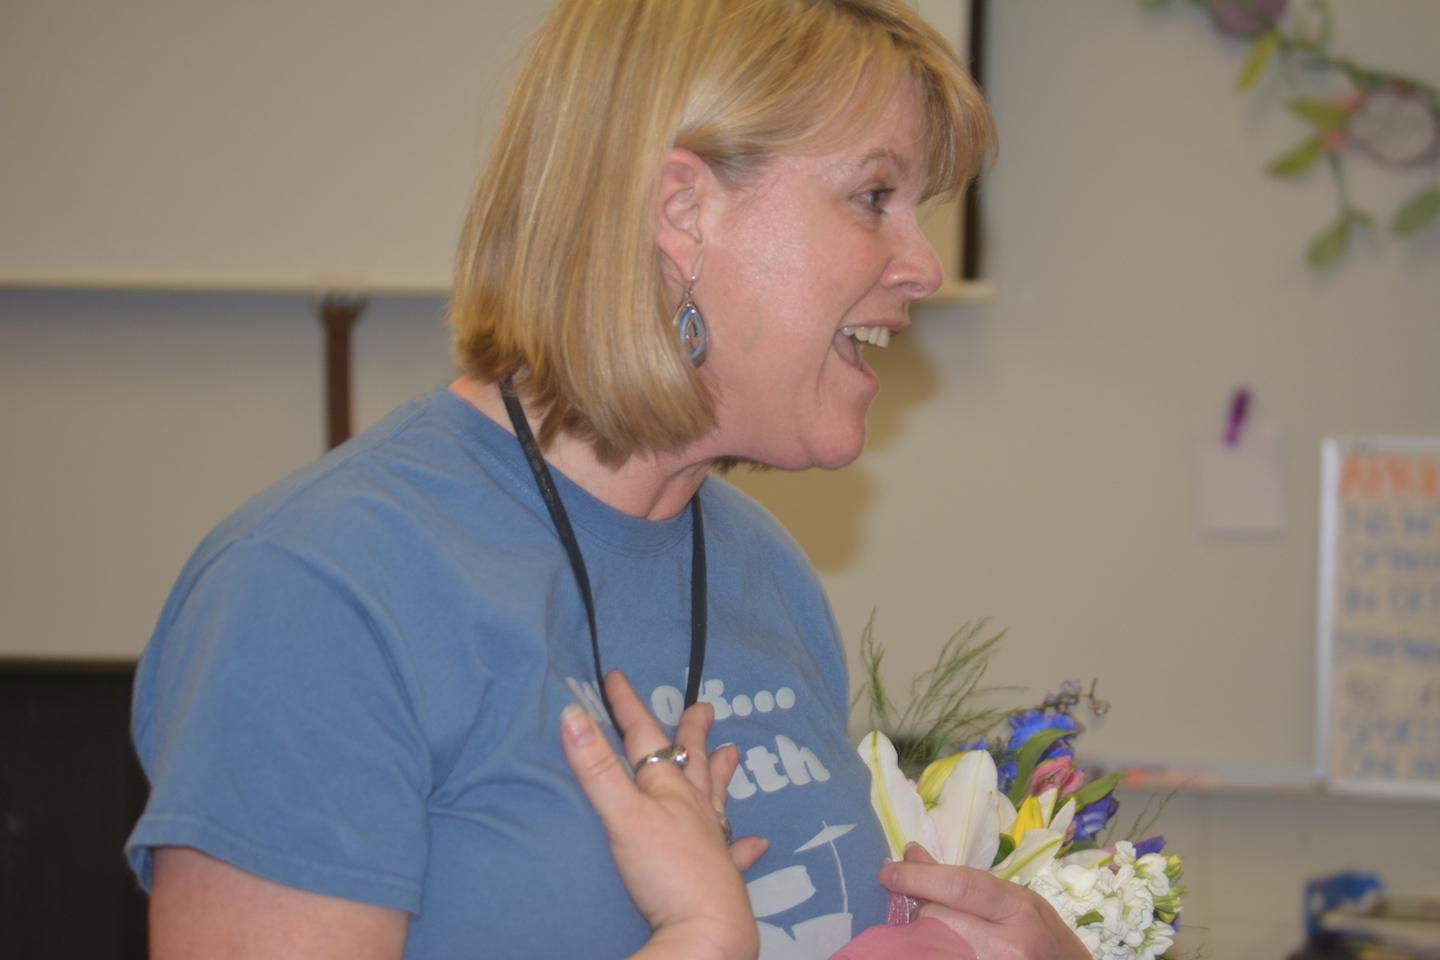 Janet Levin, who has advised The Correspondent newspaper at John Hersey High School in Arlington Heights for 30 years, receives the news that she has won the IJEA's highest honor for a journalism educator: the James A Tidwell Award.